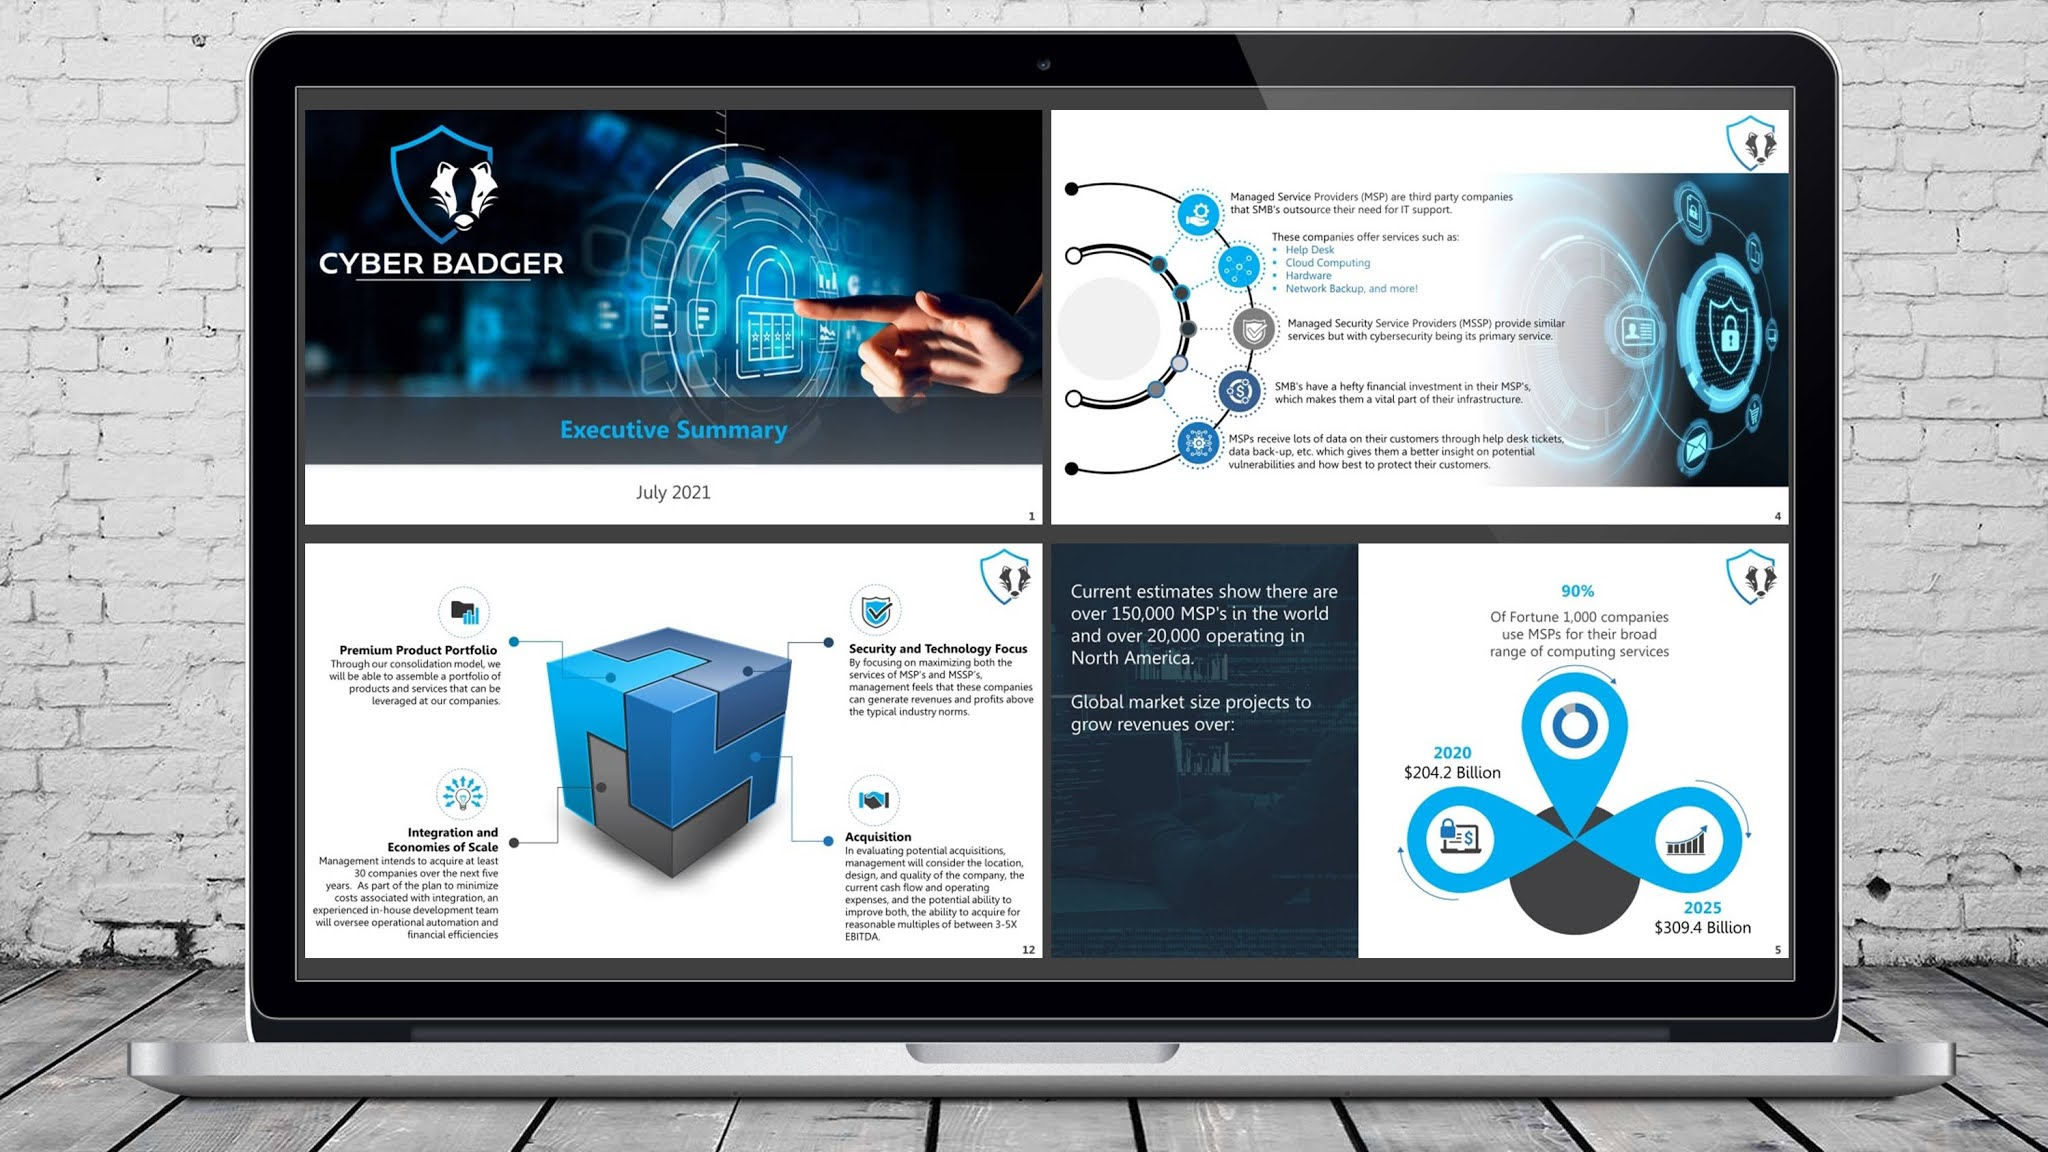 Cyber security executive summary PowerPoint presentation of a US leading managed security service provider.